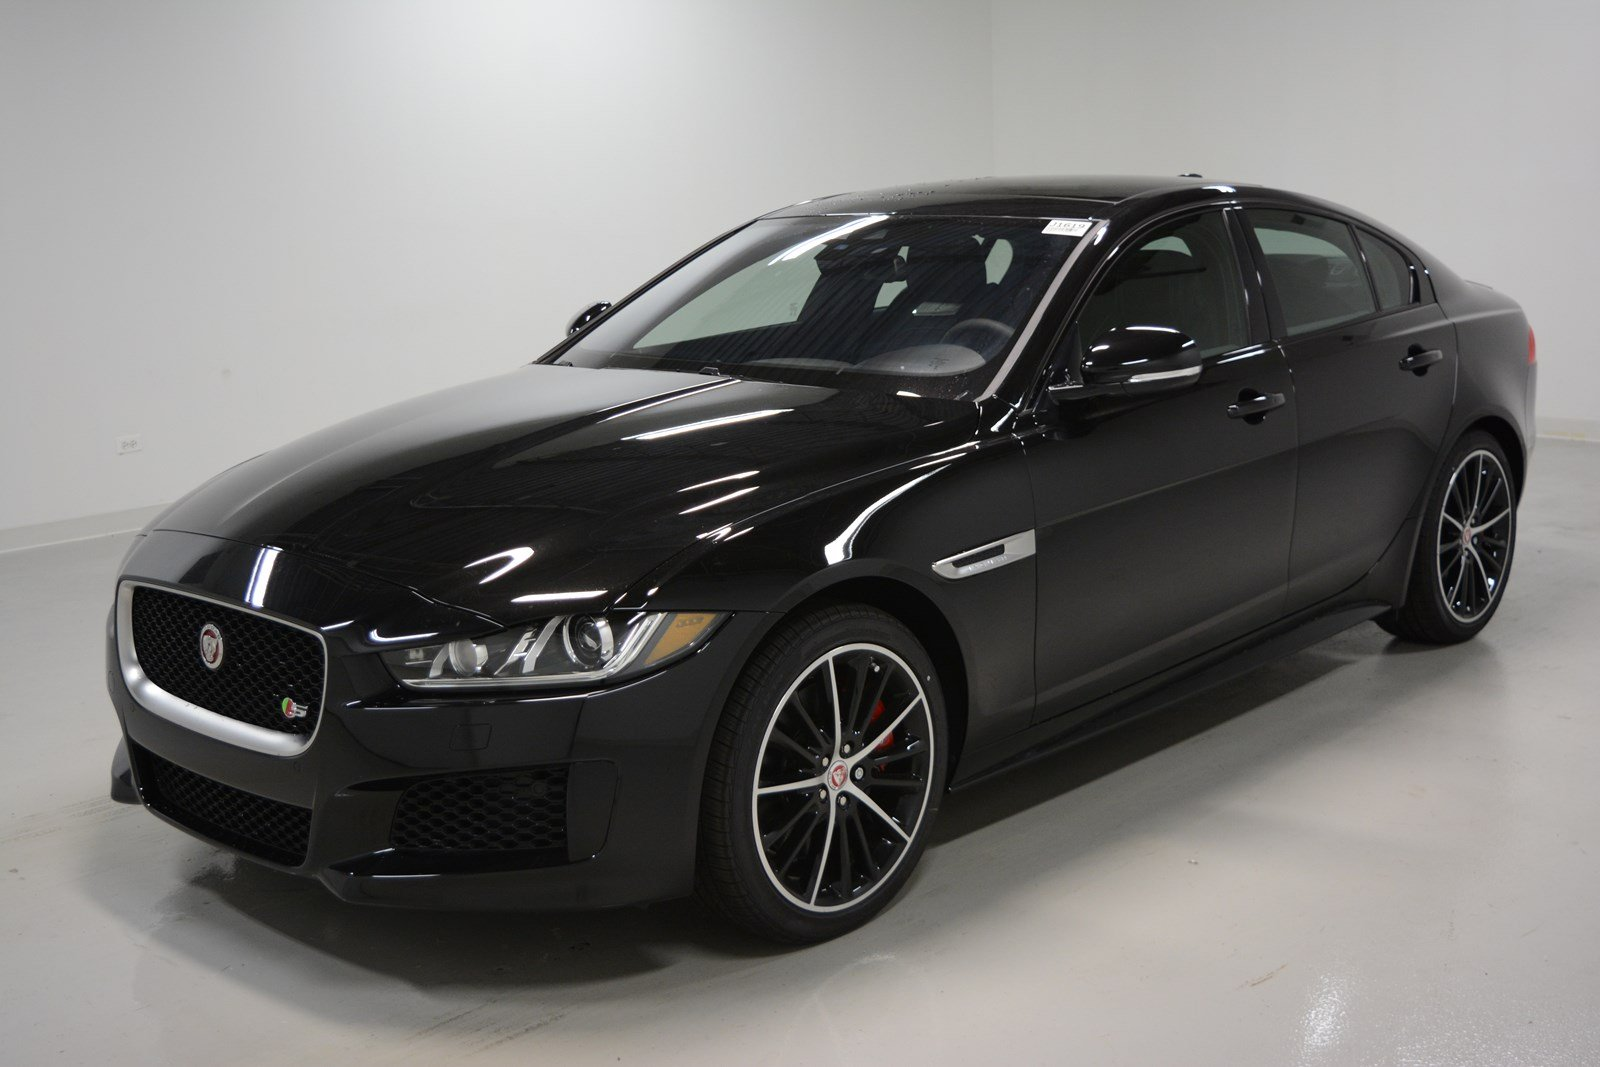 new 2018 jaguar xe s 4dr car in elmhurst j1619 jaguar elmhurst. Black Bedroom Furniture Sets. Home Design Ideas